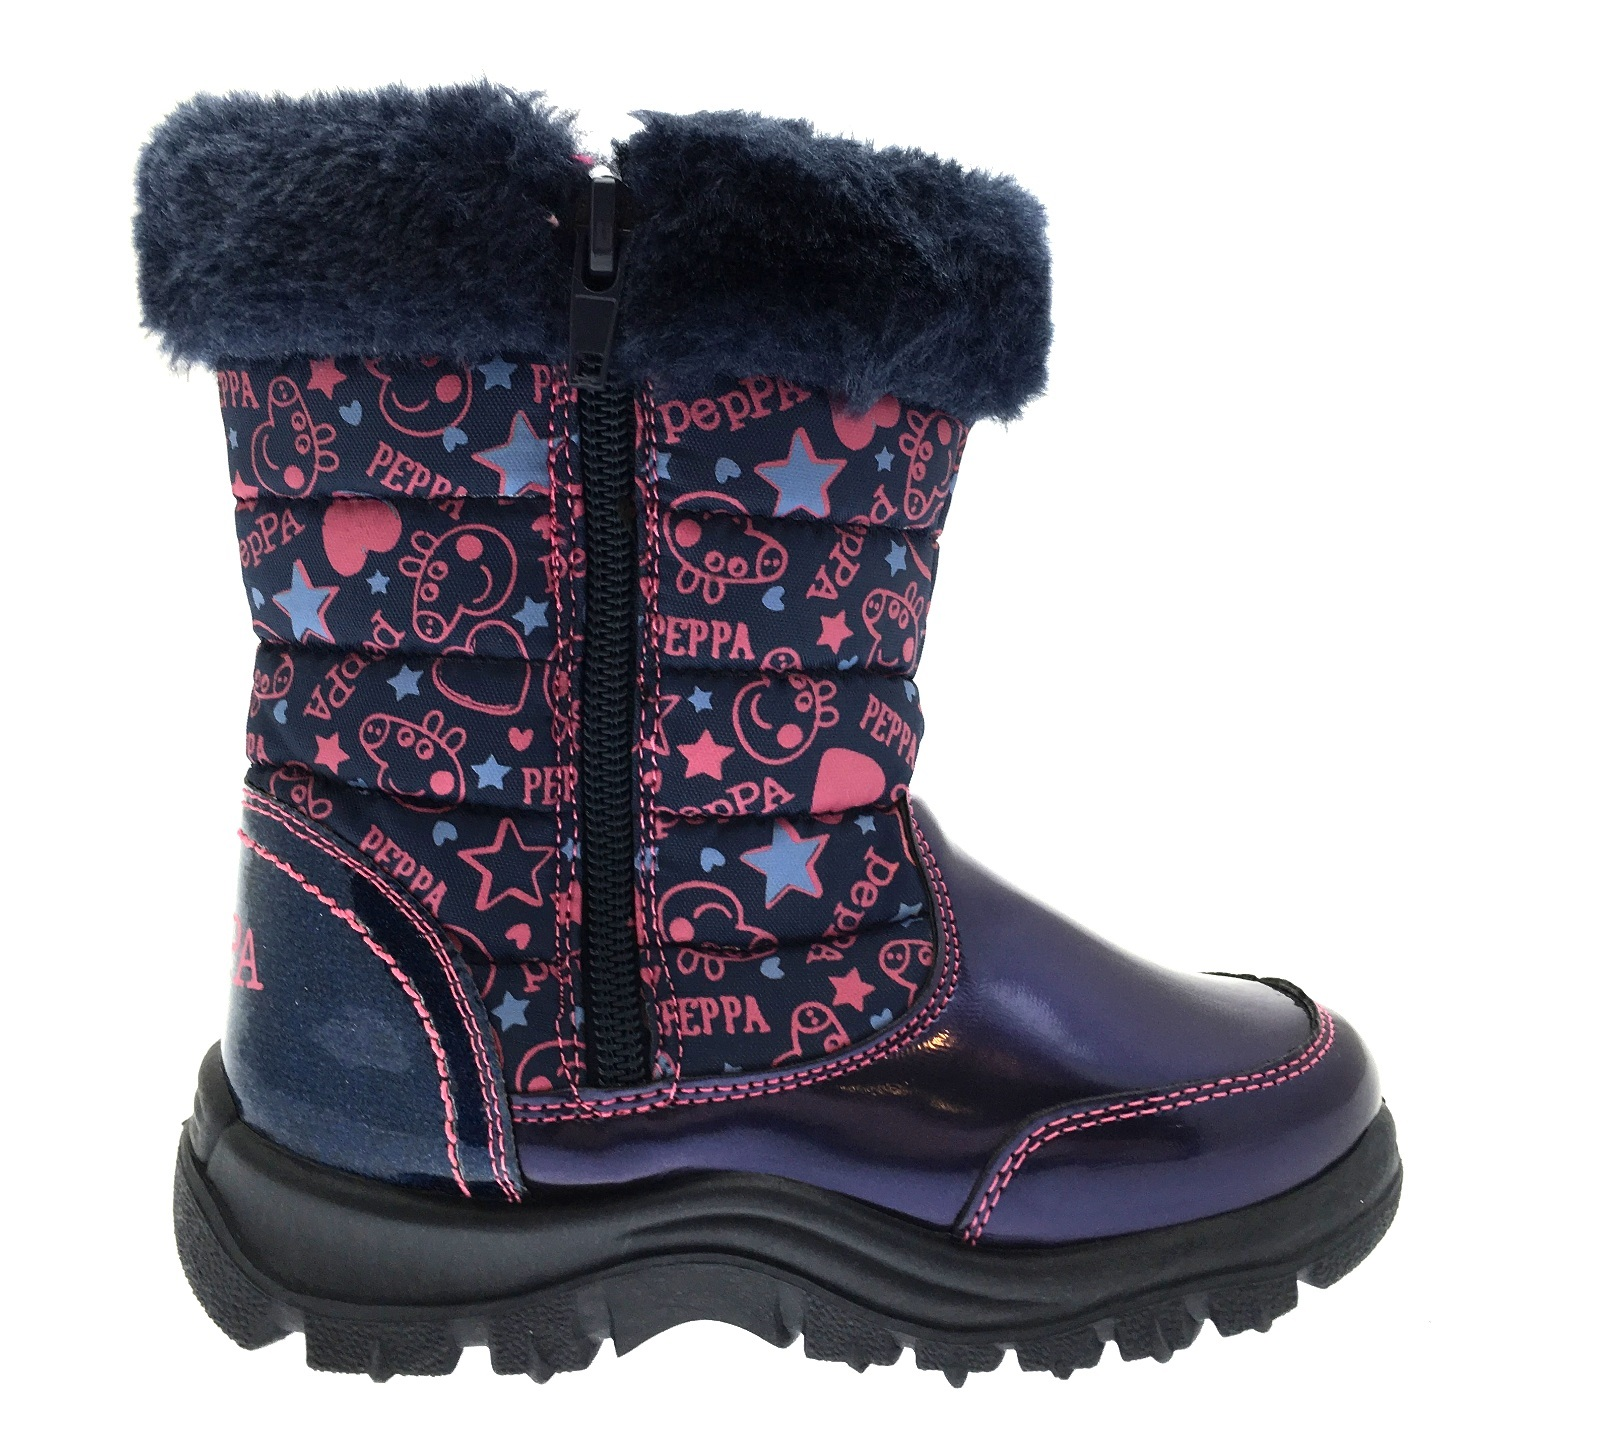 Girls Peppa Pig Snow Boots Warm Winter Faux Fur Trim Mid